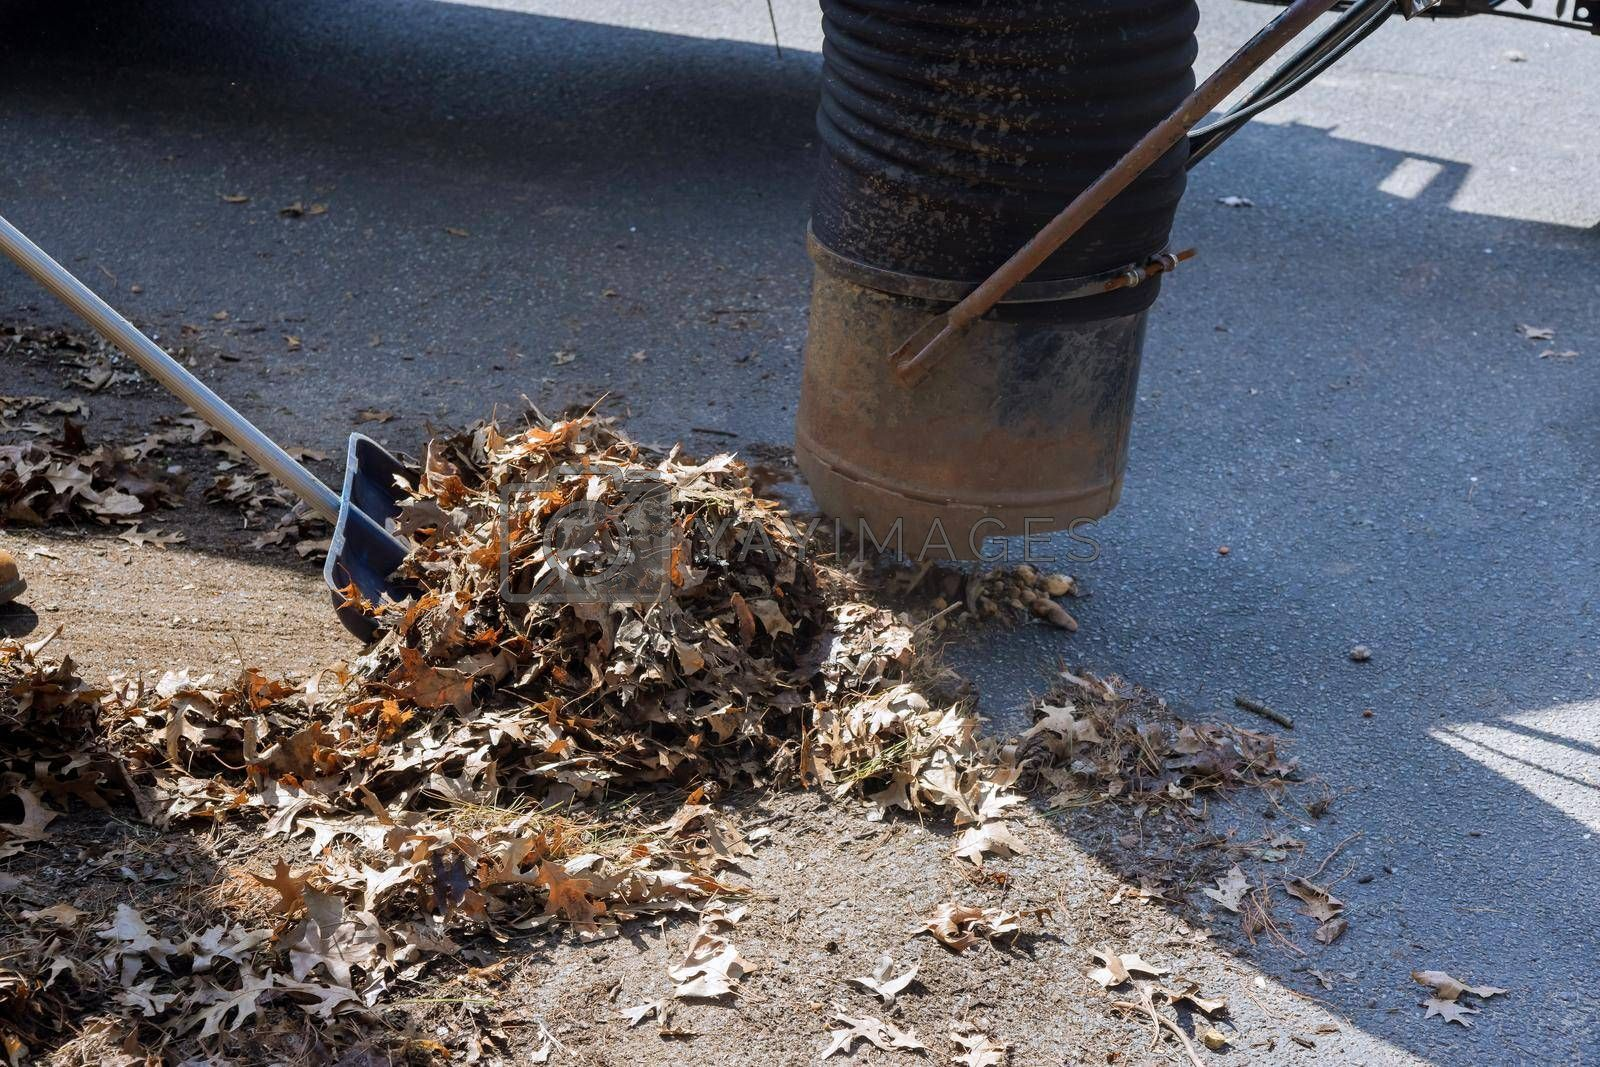 Municipal cleaning service for falling leaves being vacuum up on city street in autumn